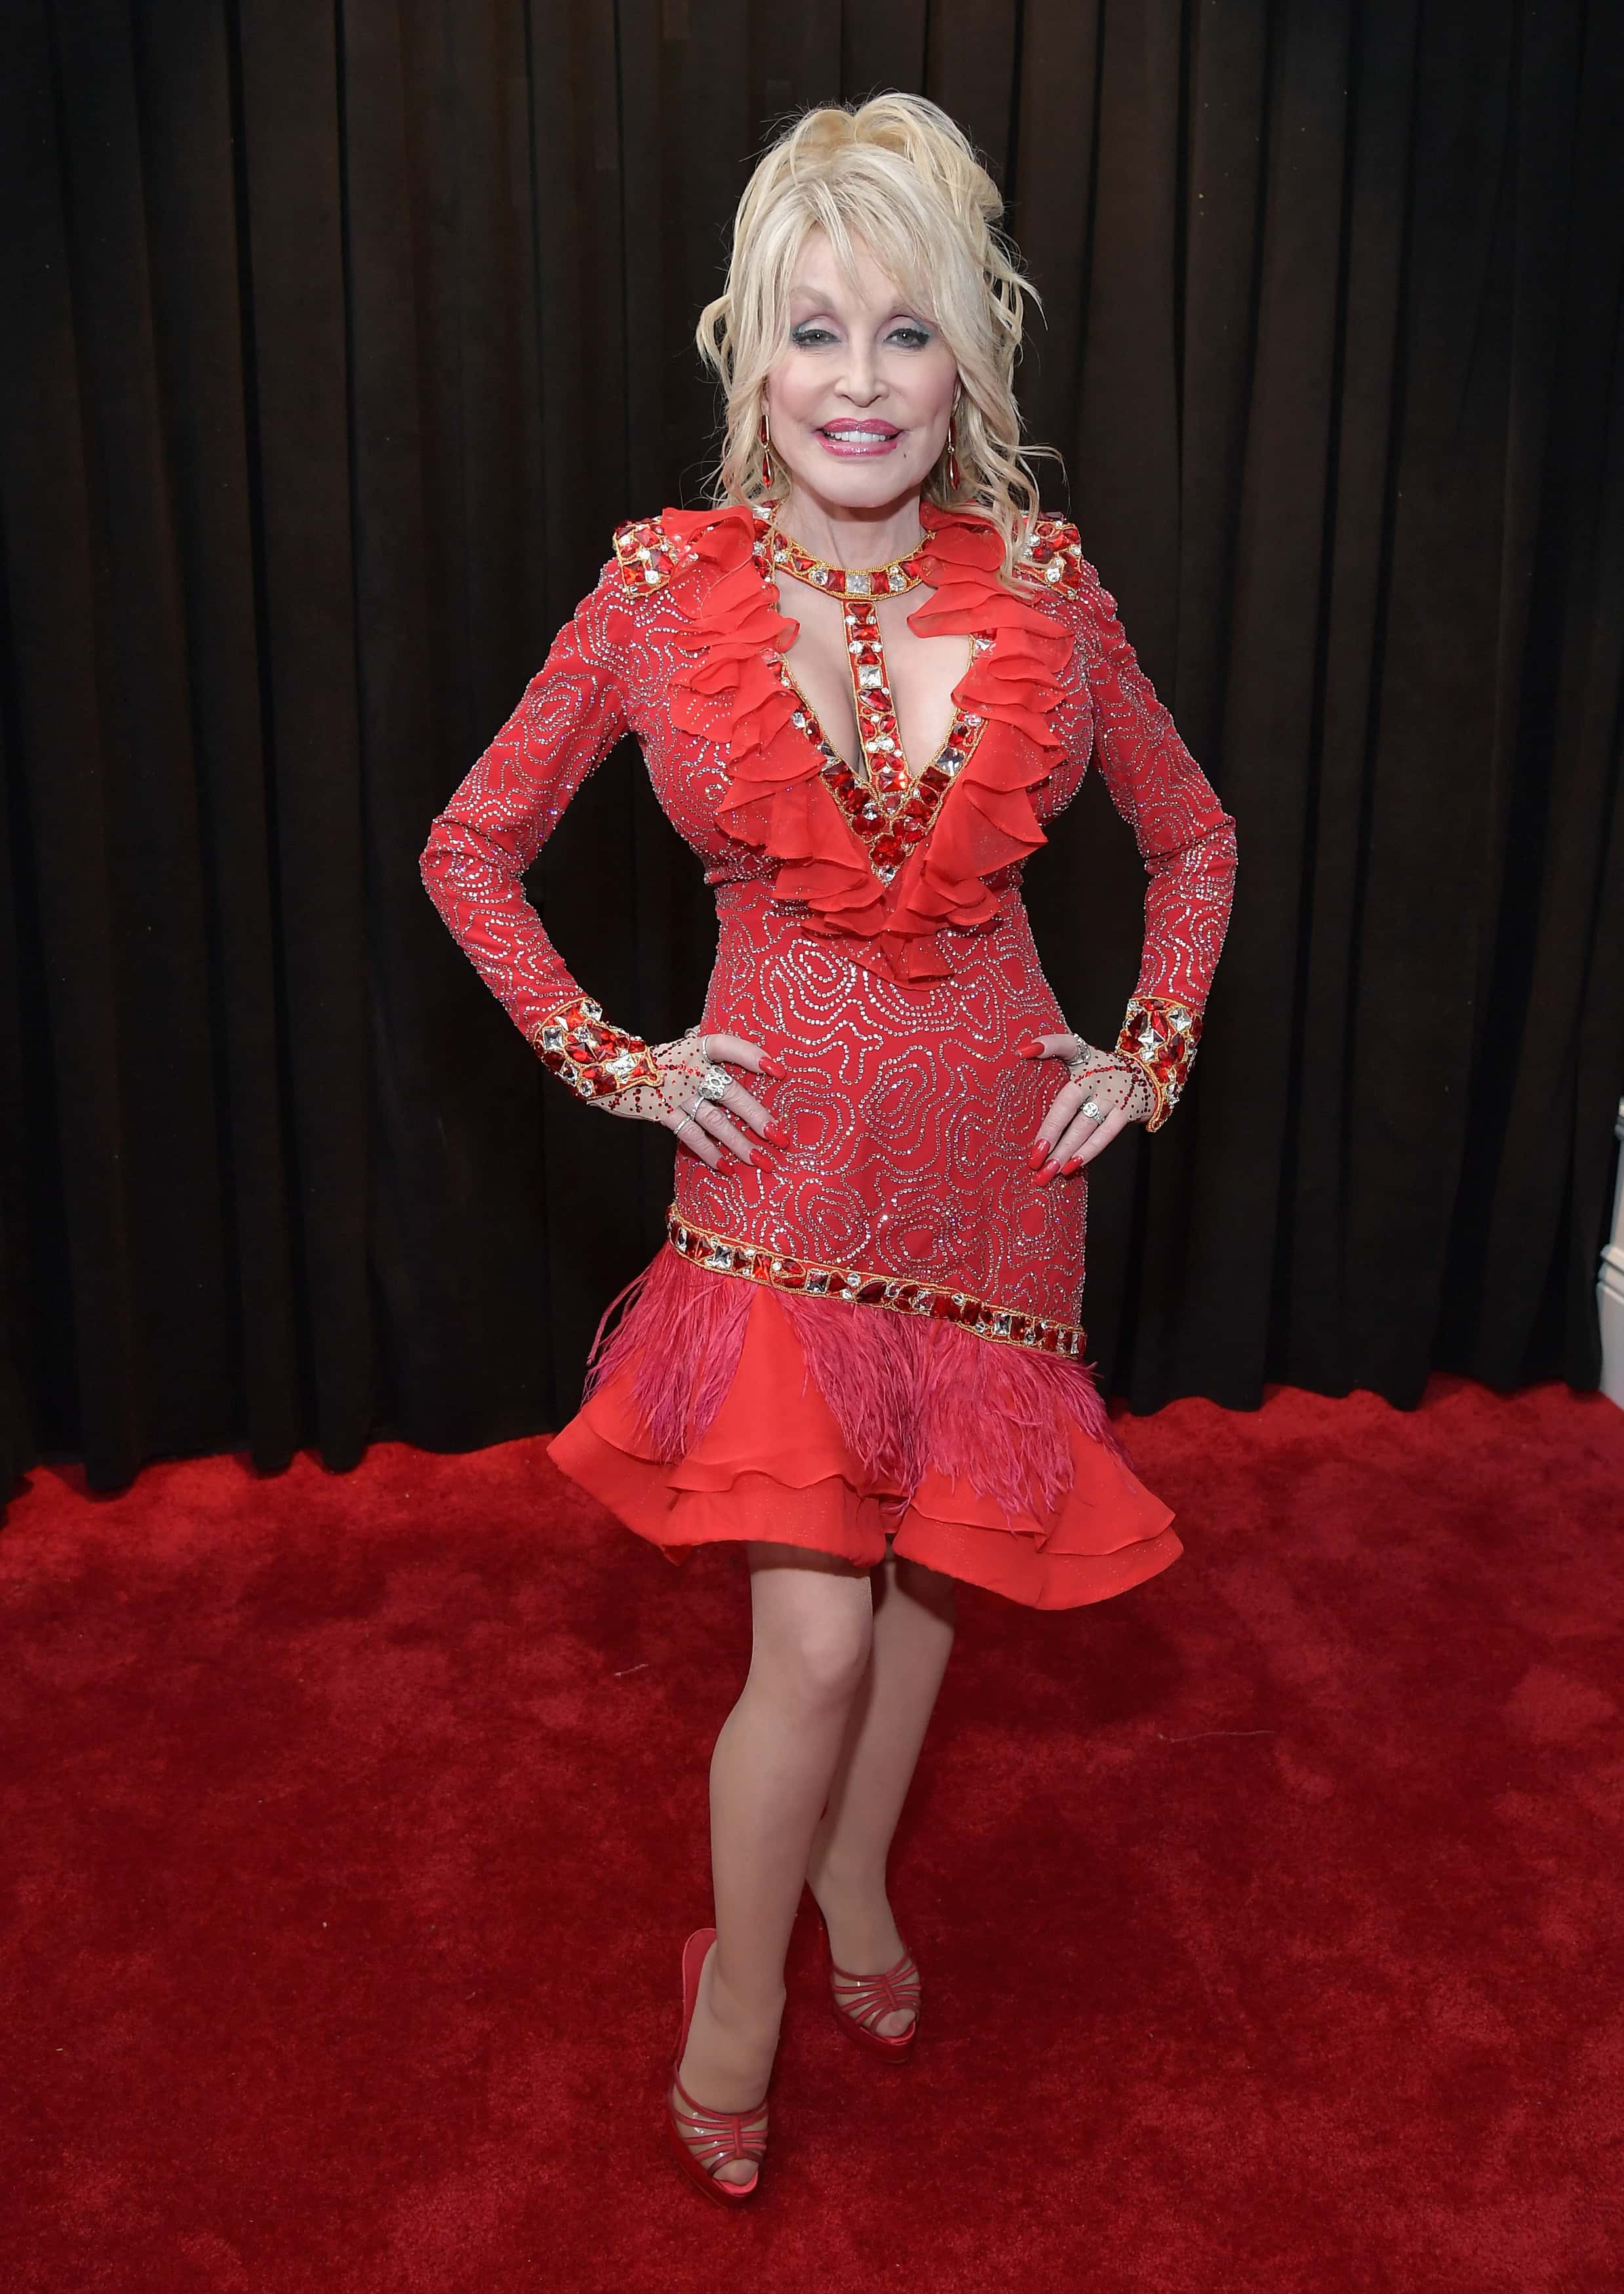 When Did Dolly Parton Get Breast Implants : dolly, parton, breast, implants, Dolly, Parton, Breast, Implants?, Here's, Singer, Virginia, Twins, 'killing', After, Surgery, MEAWW